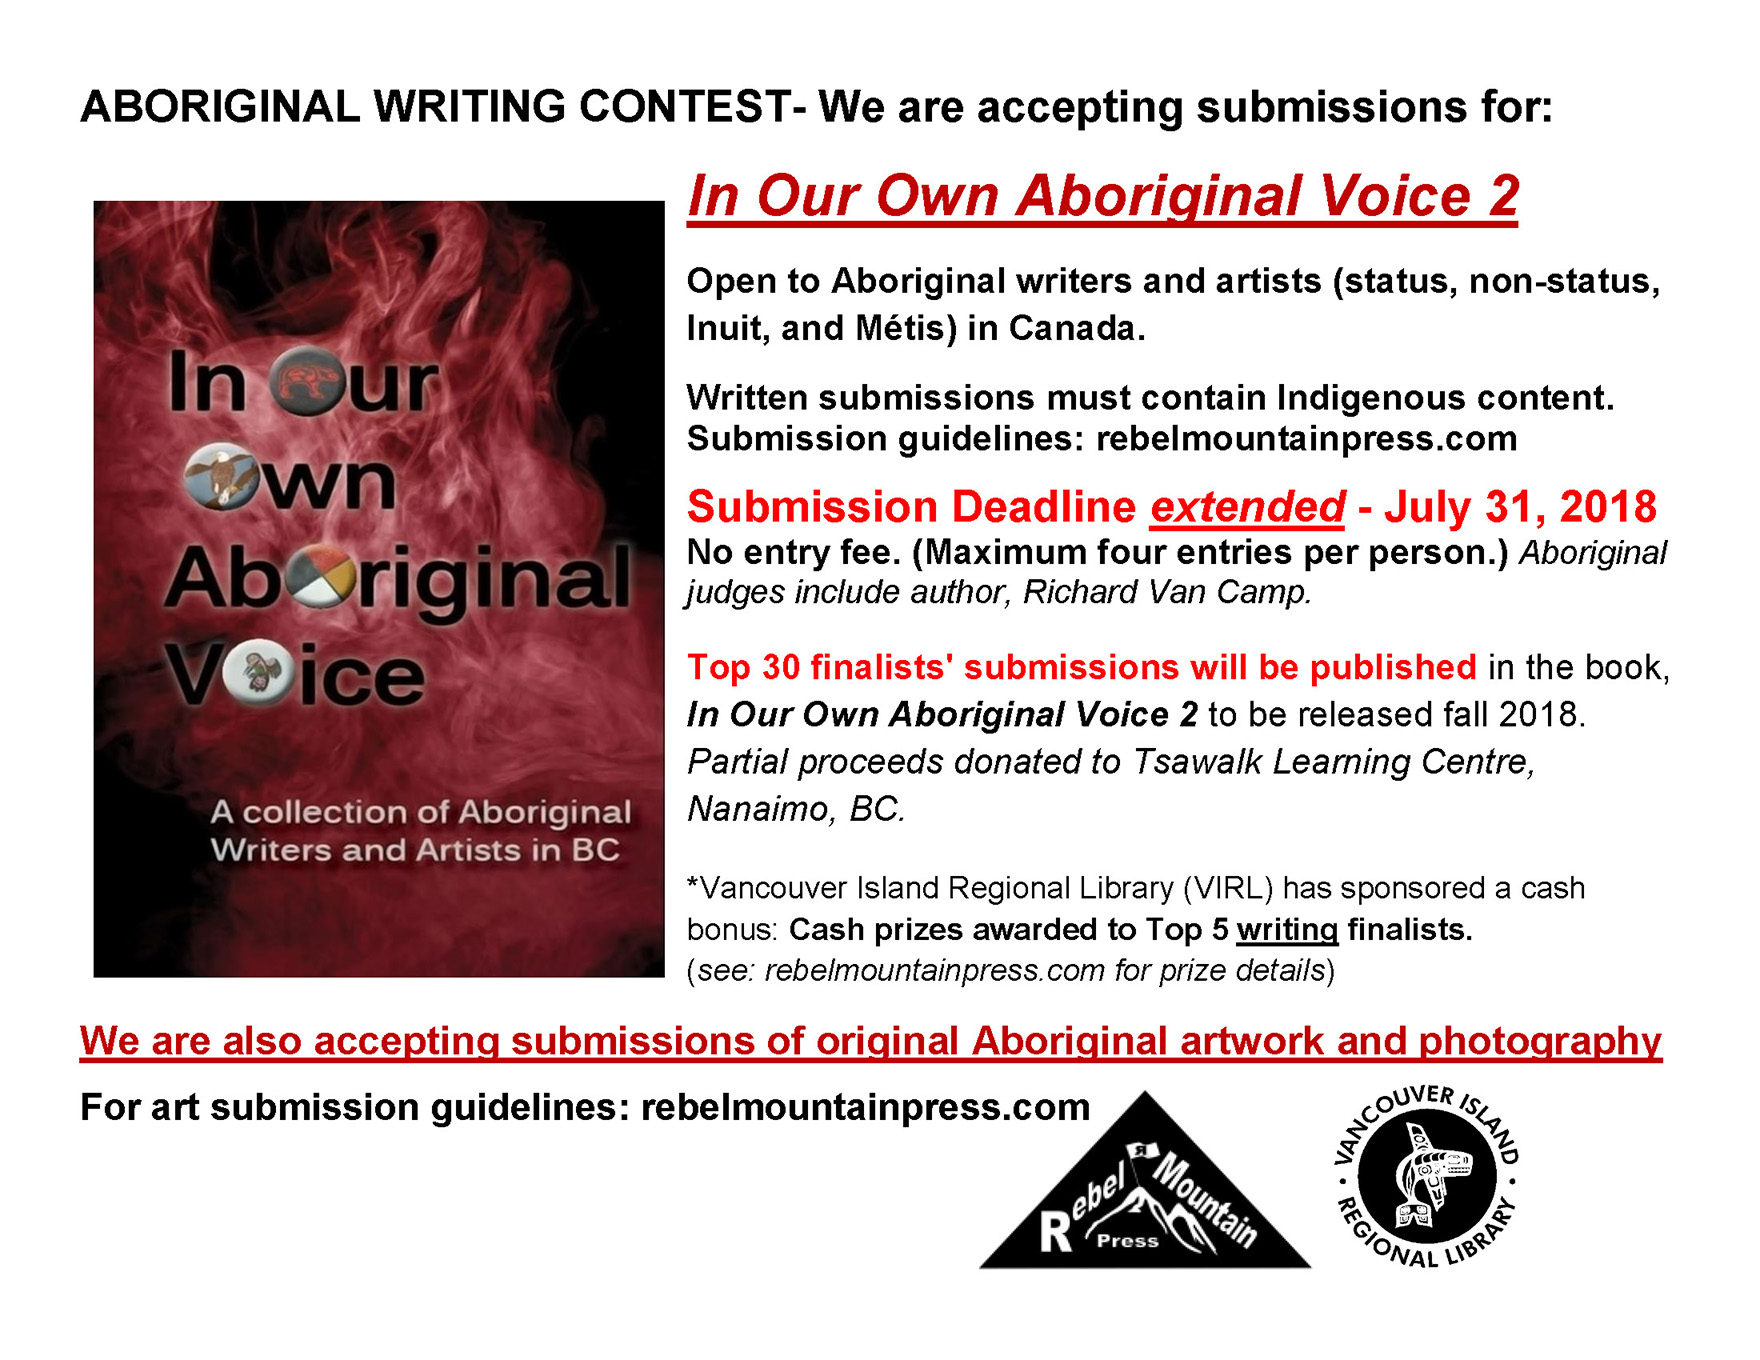 Submission Call Deadline: July 31, 2018